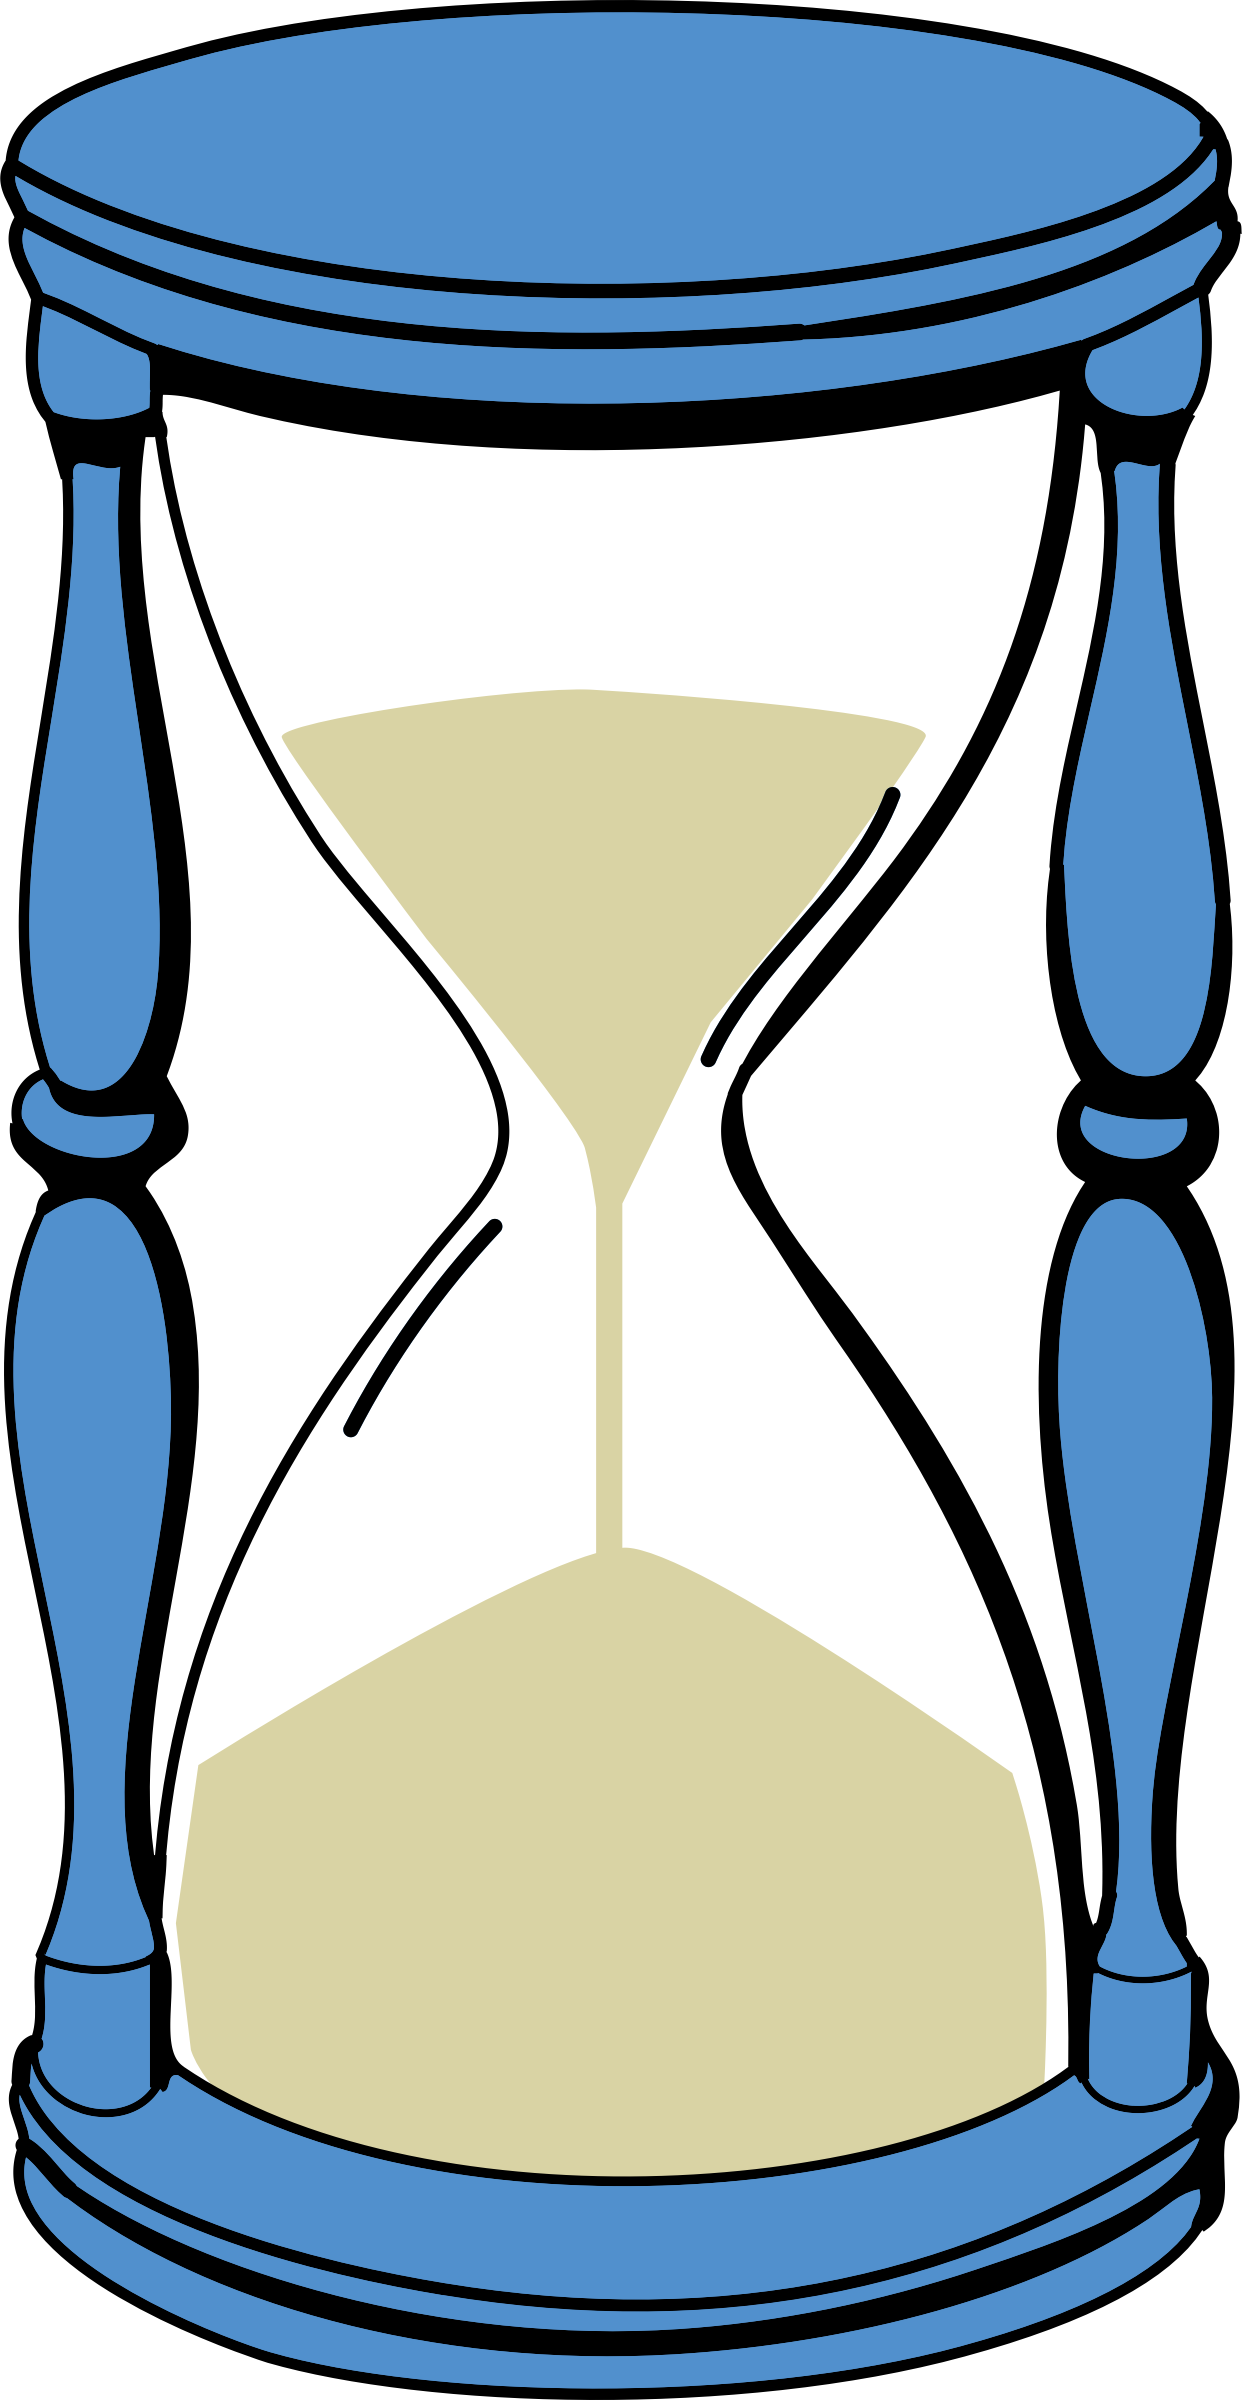 hourglass with sand by johnny_automatic